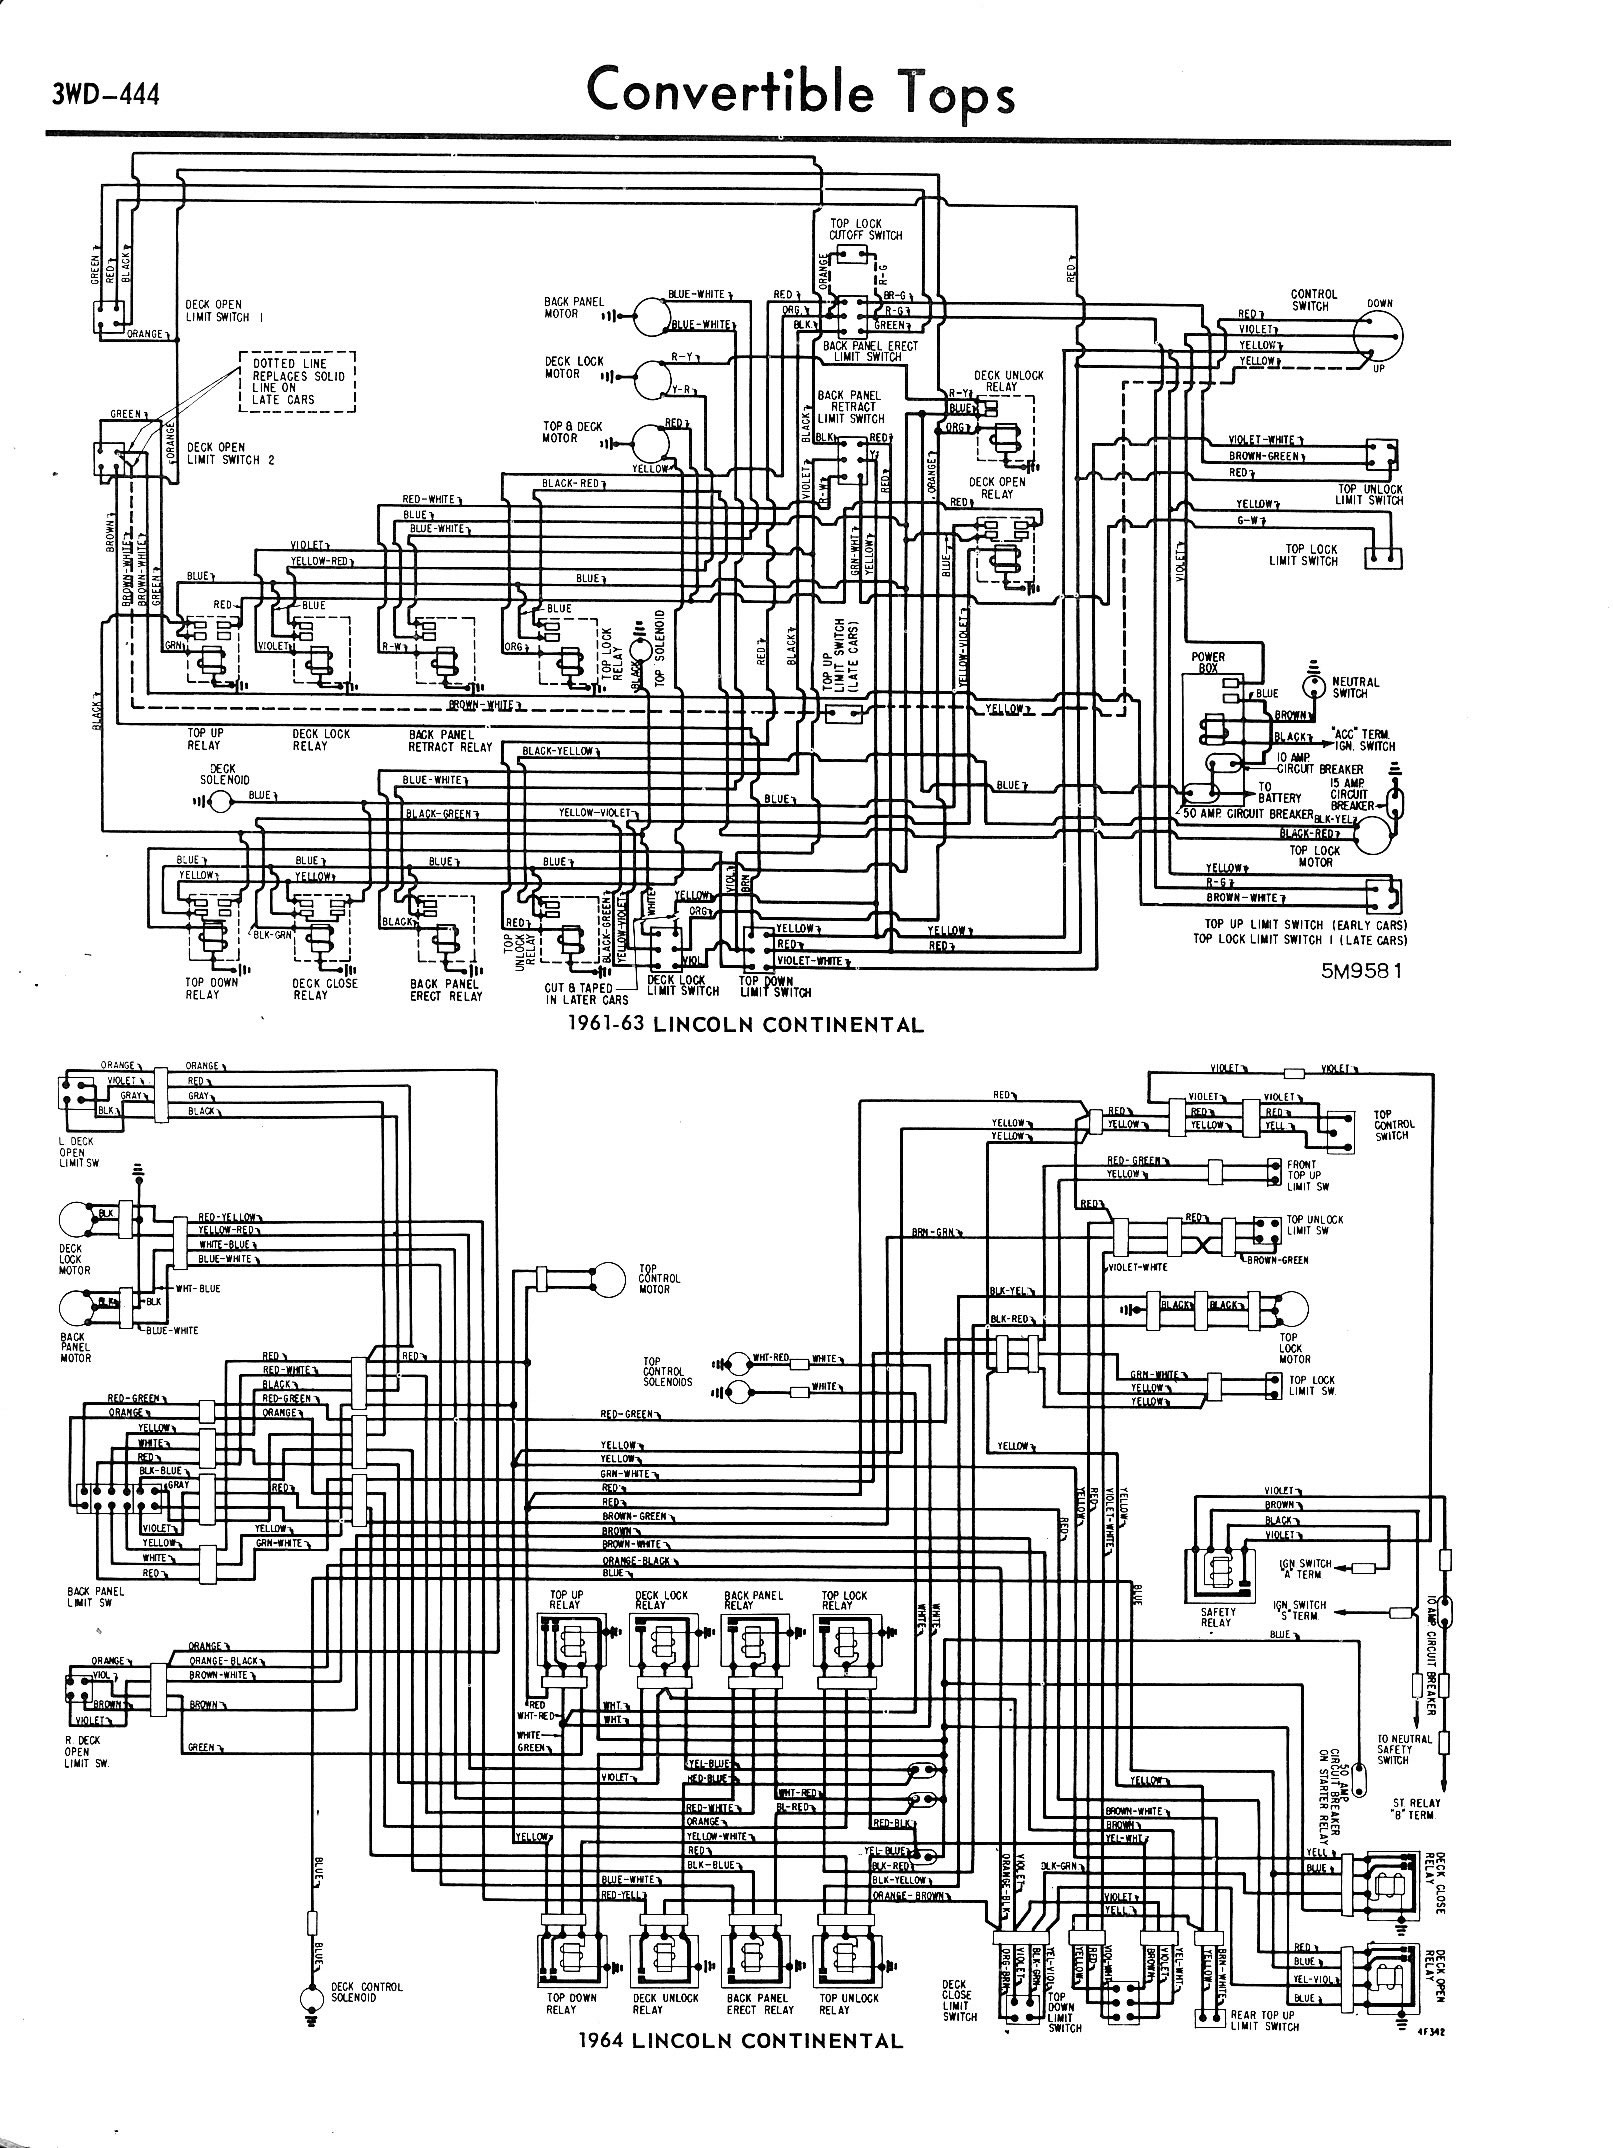 3WD 444_jpg 1966 lincoln continental wiring diagram 1970 lincoln continental  at edmiracle.co